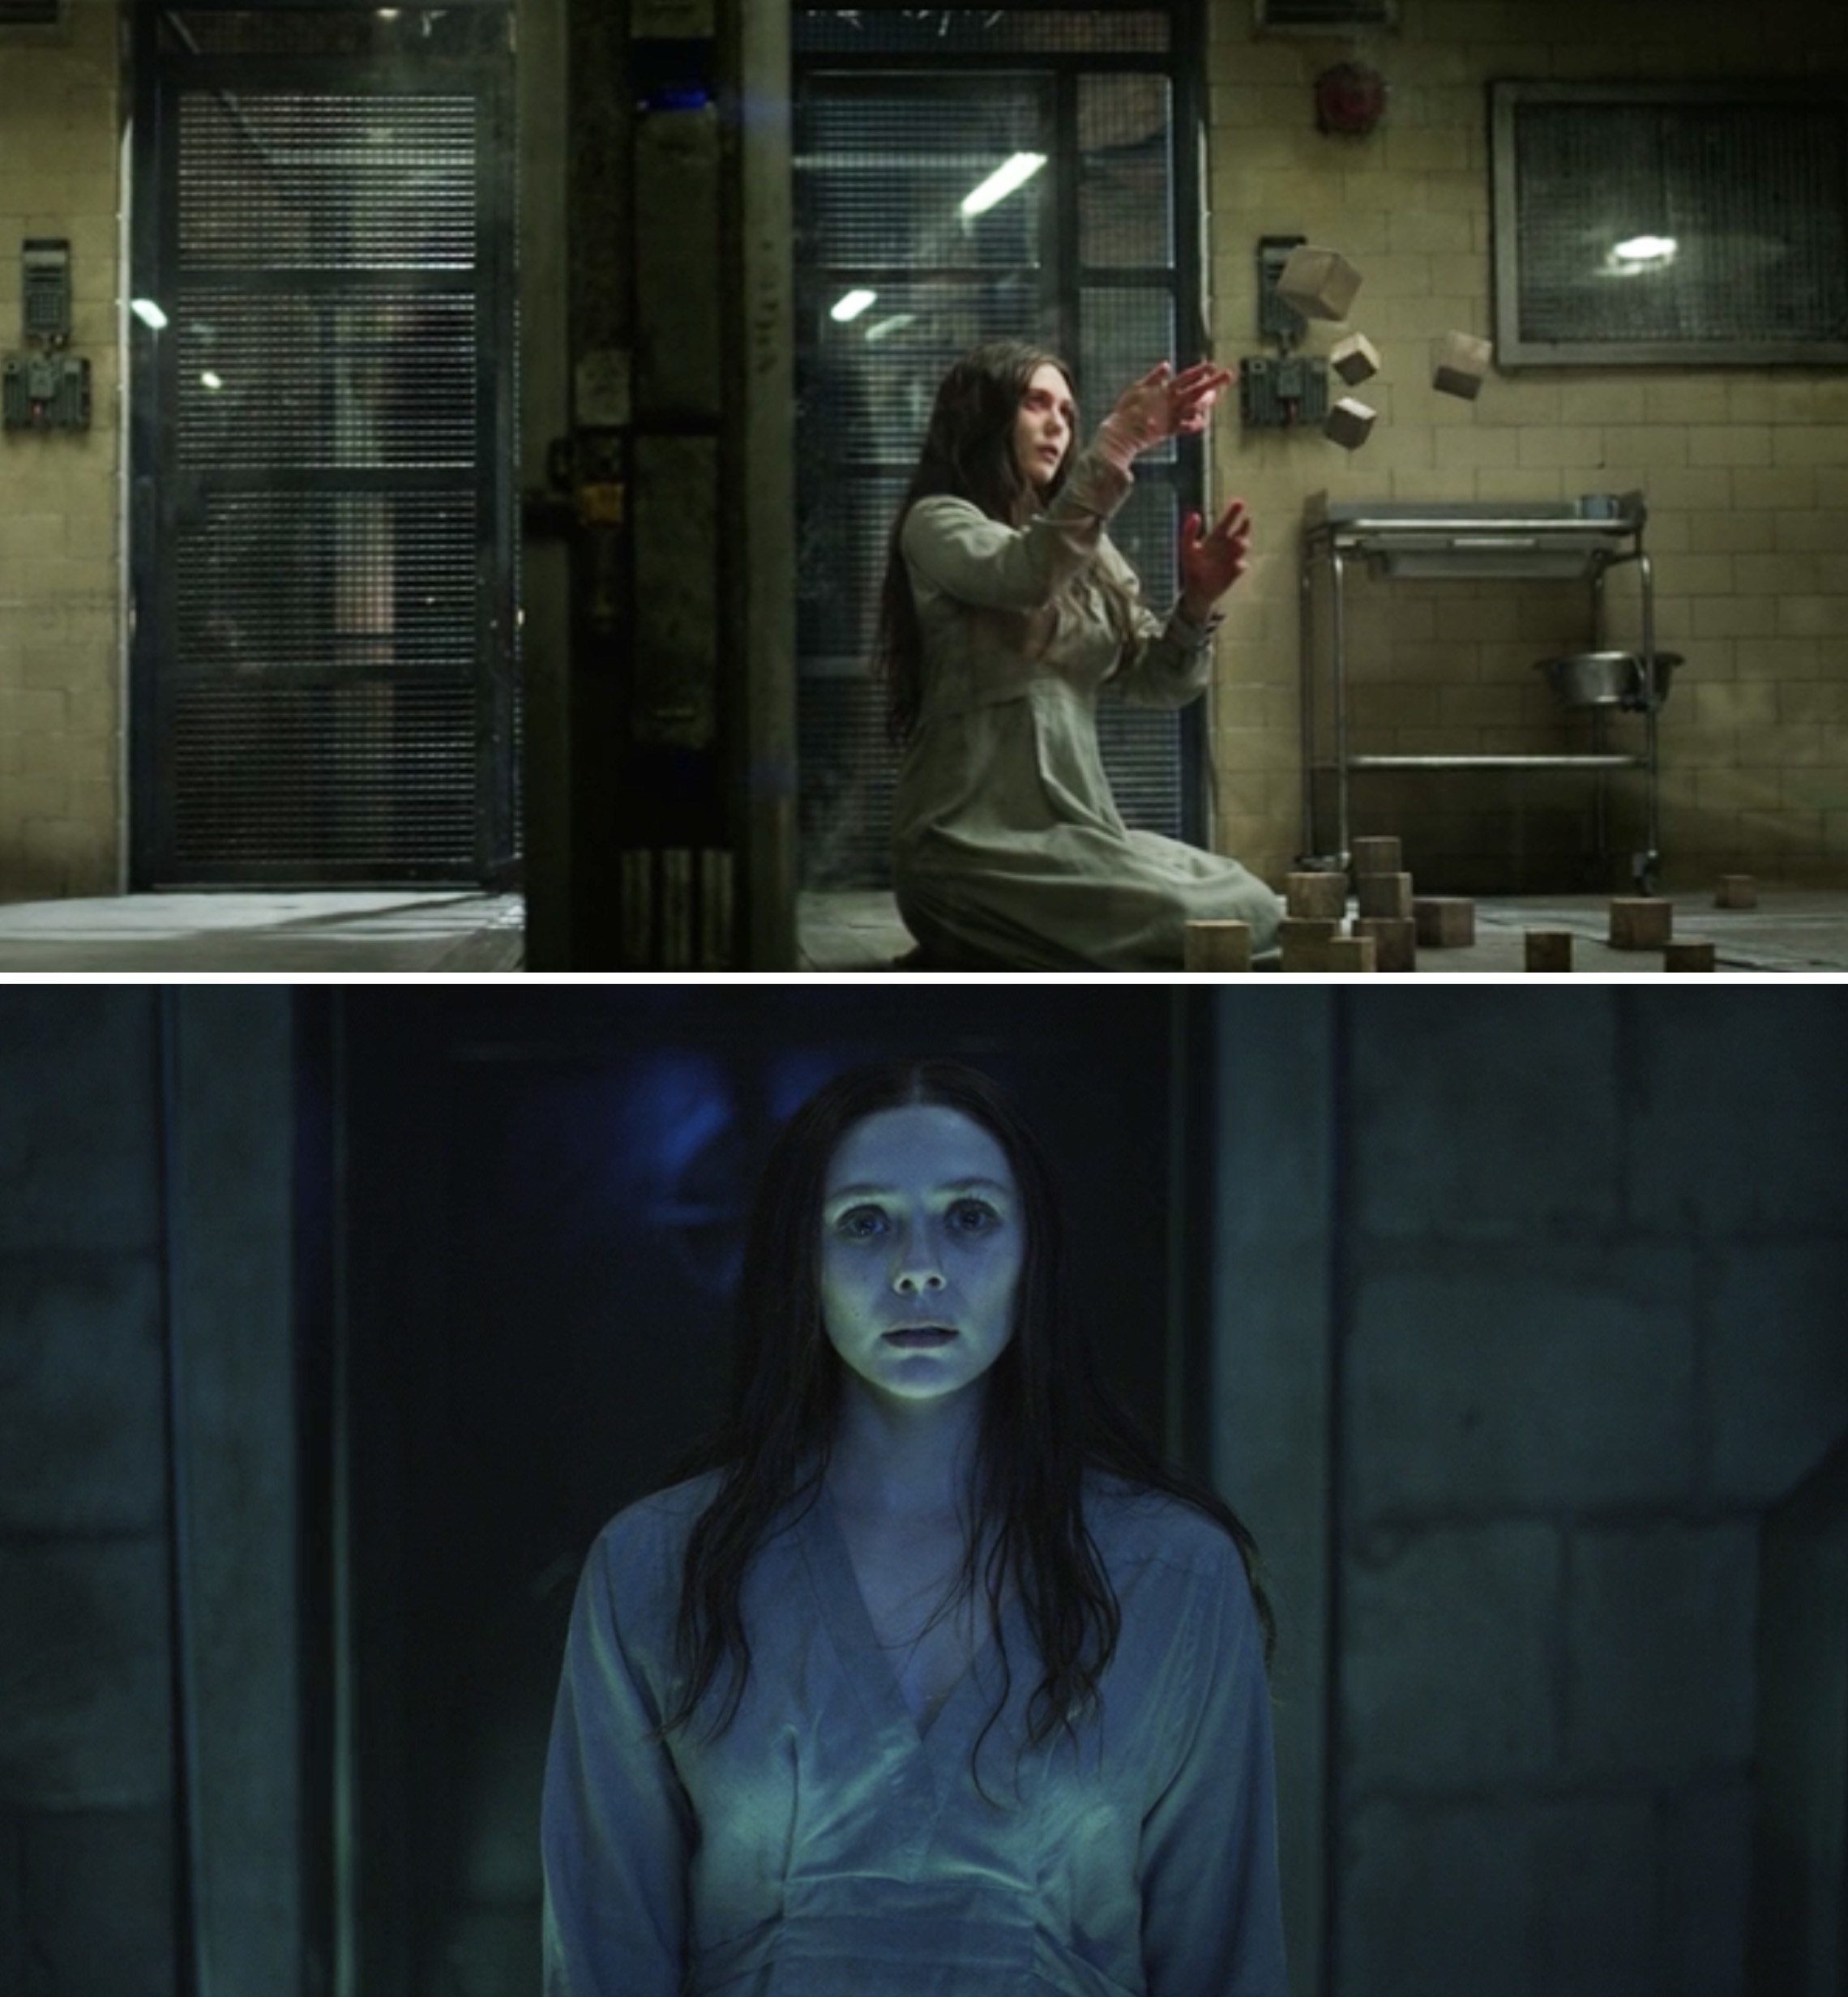 "Wanda in solitary in ""Captain America: The Winter Soldier"" vs. Wanda in the same outfit in ""WandaVision"""